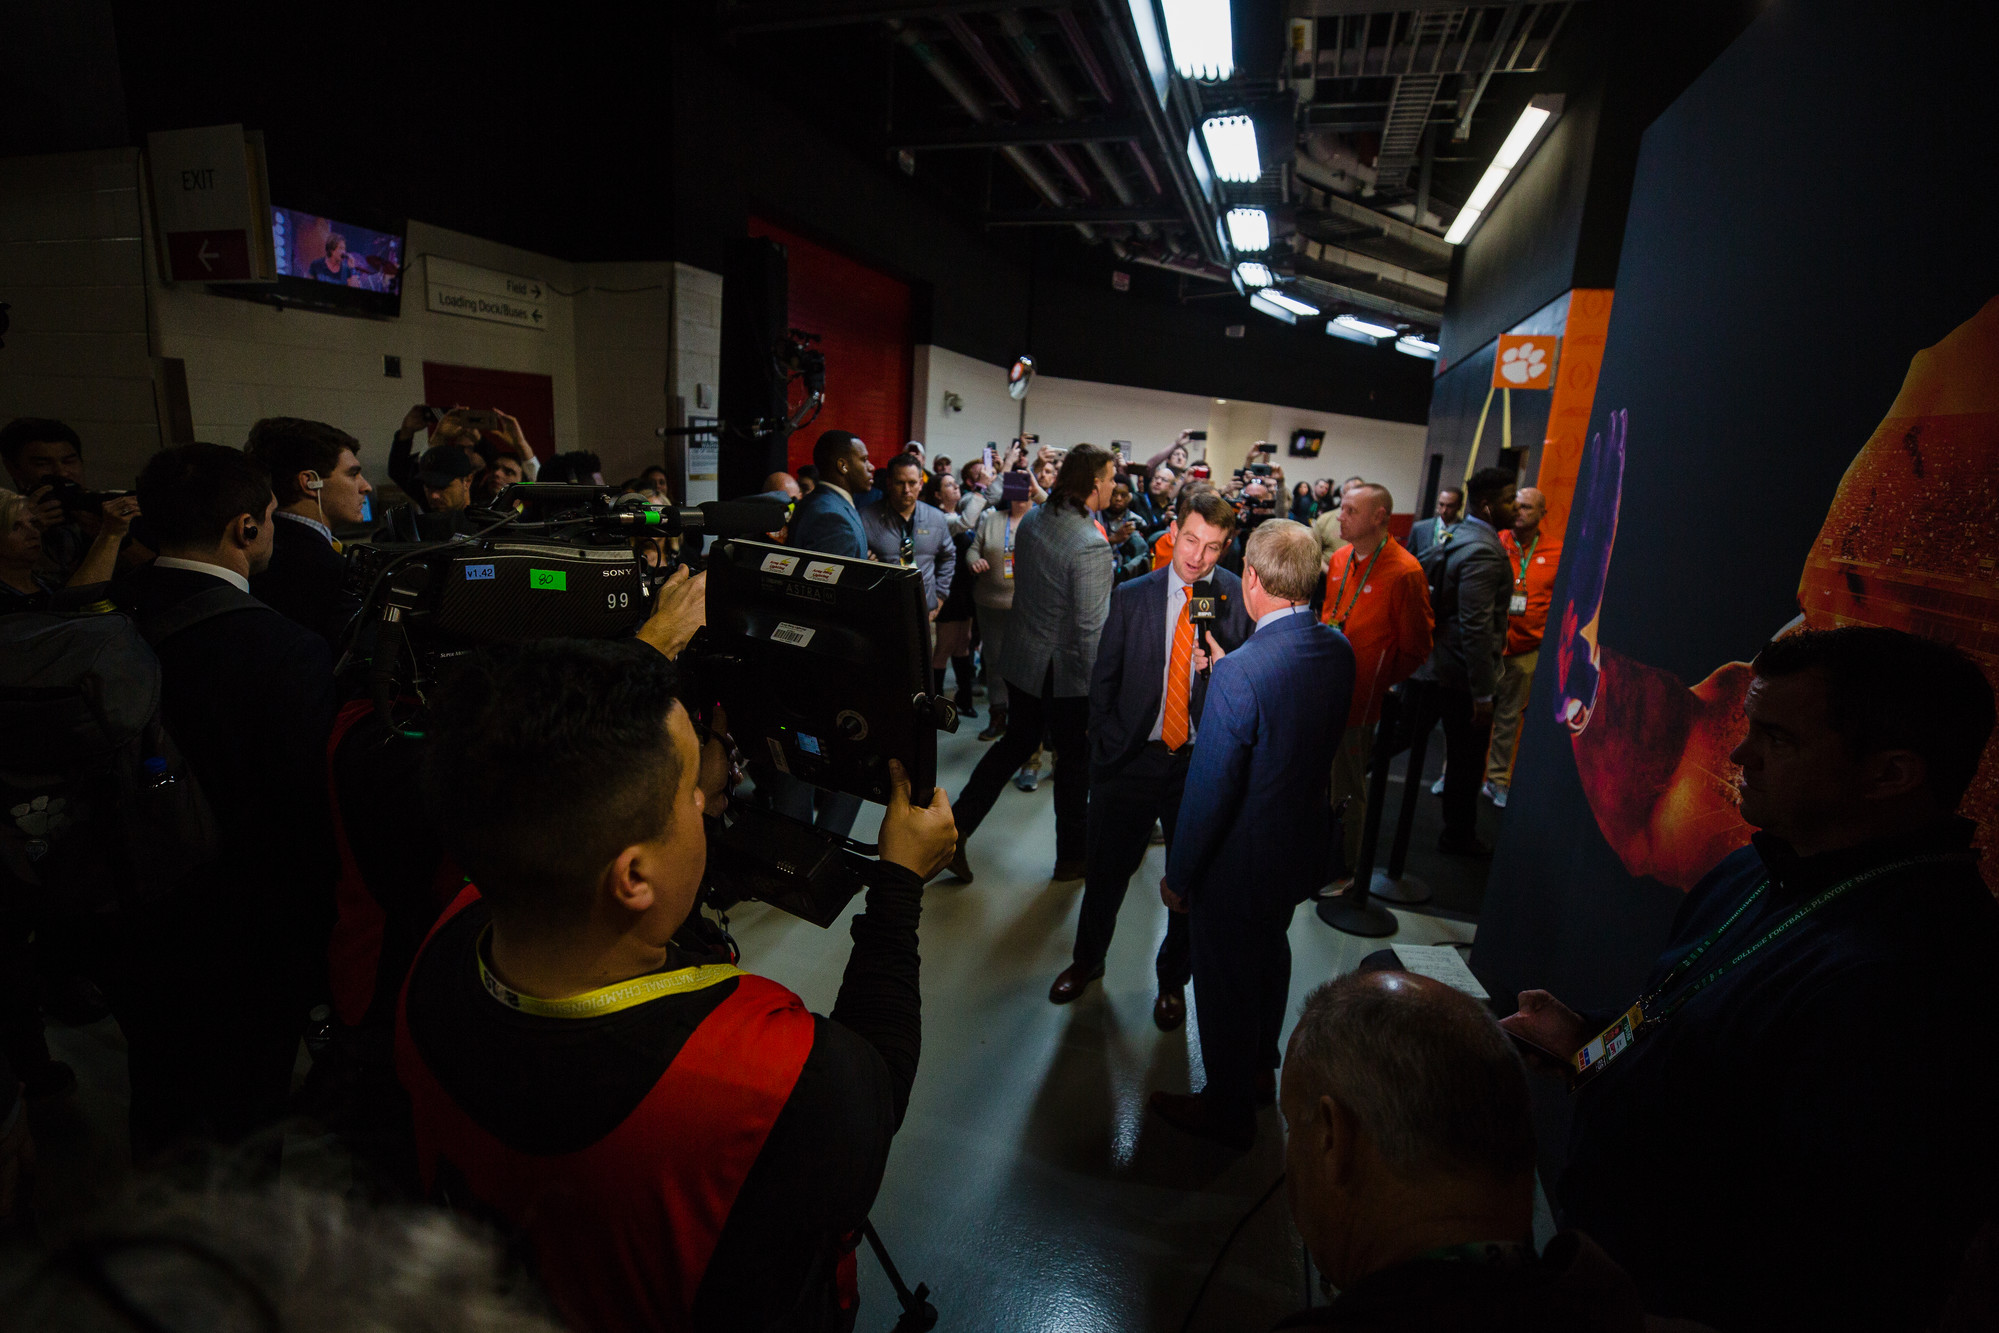 Clemson head coach Dabo Swinney talks with reporters in Levi's Stadium in Santa Clara, California, on Monday, Jan. 7 before the CFP National Championship game between Clemson and Alabama.